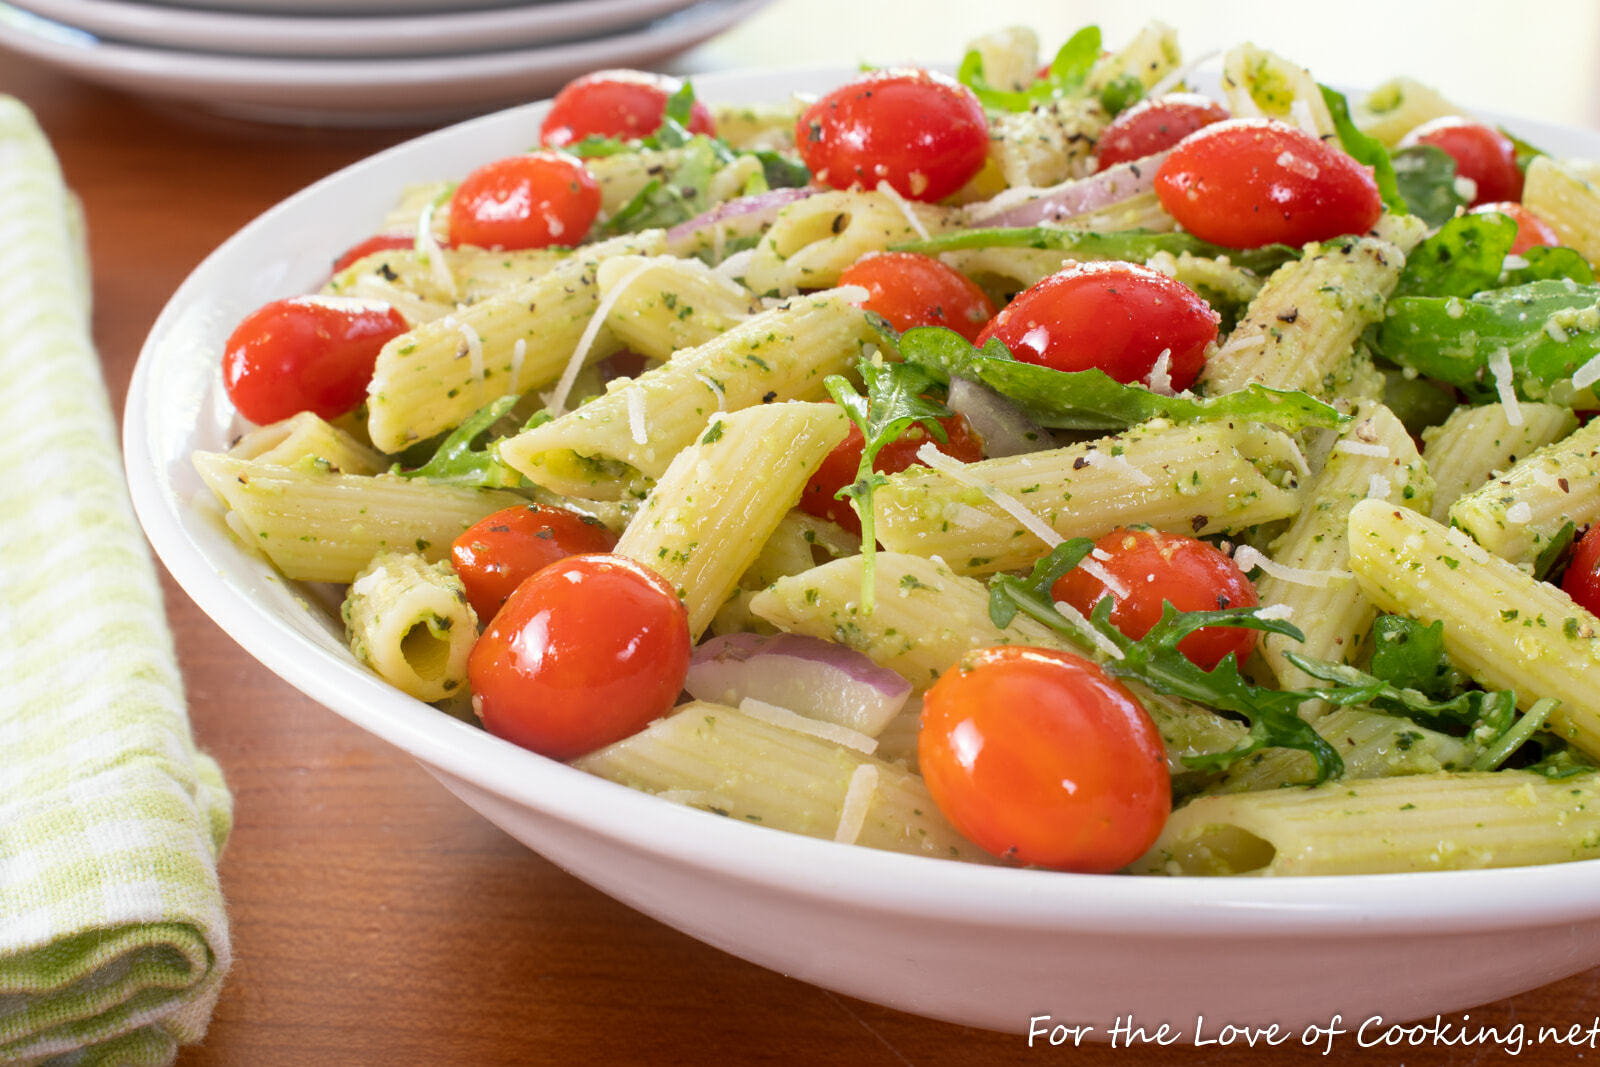 Pasta Salad with Blistered Tomatoes, Arugula, and Pesto